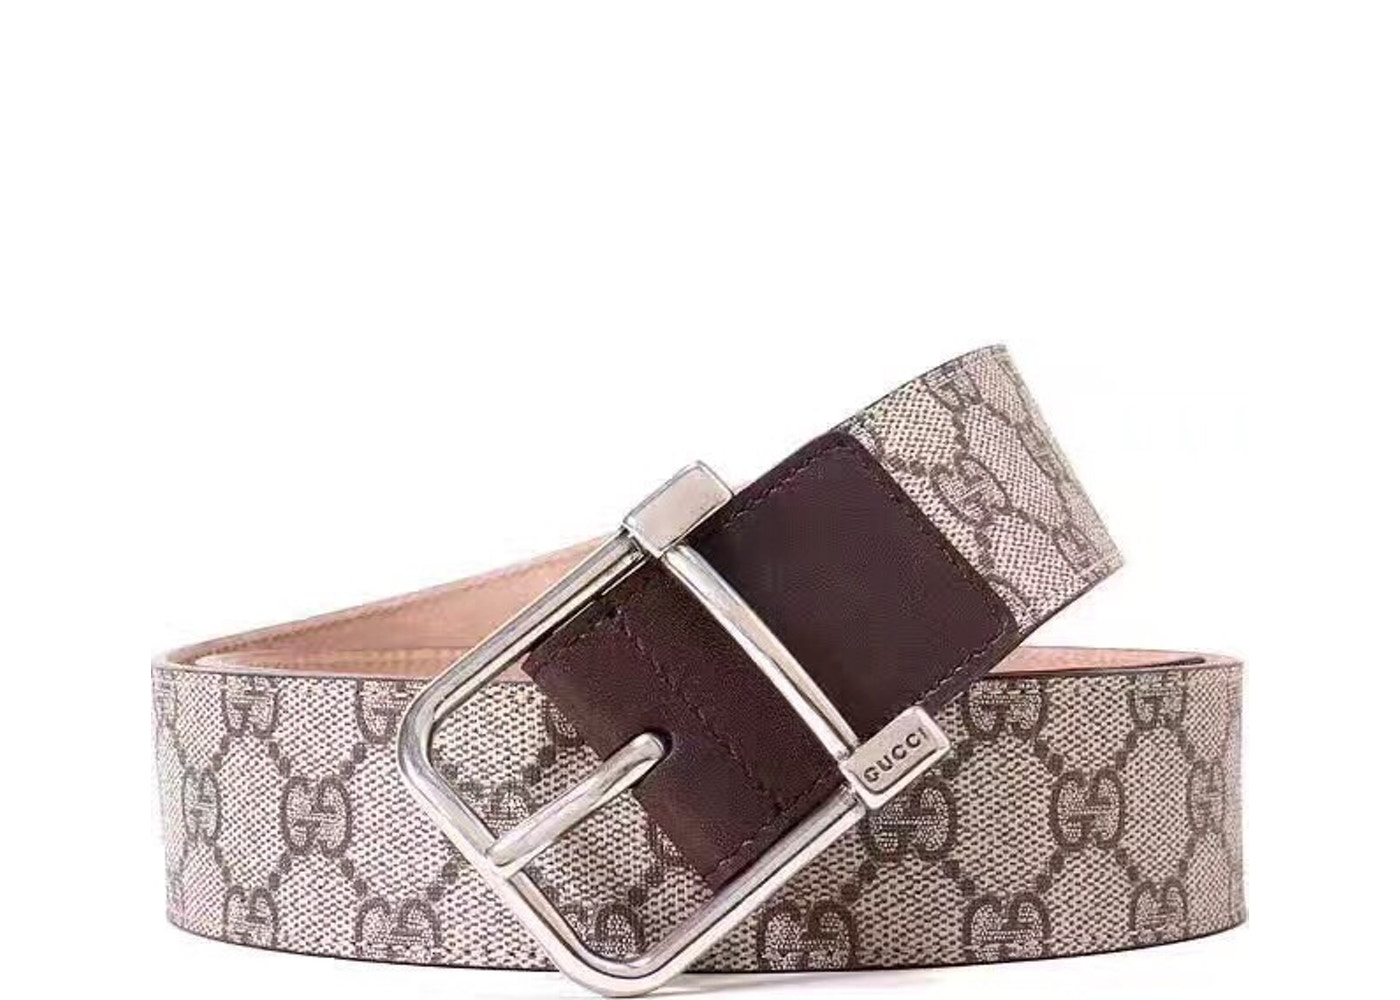 7c899254a Sell. or Ask. Size: 85/34. View All Bids. Gucci Belt GG Supreme Beige/Brown